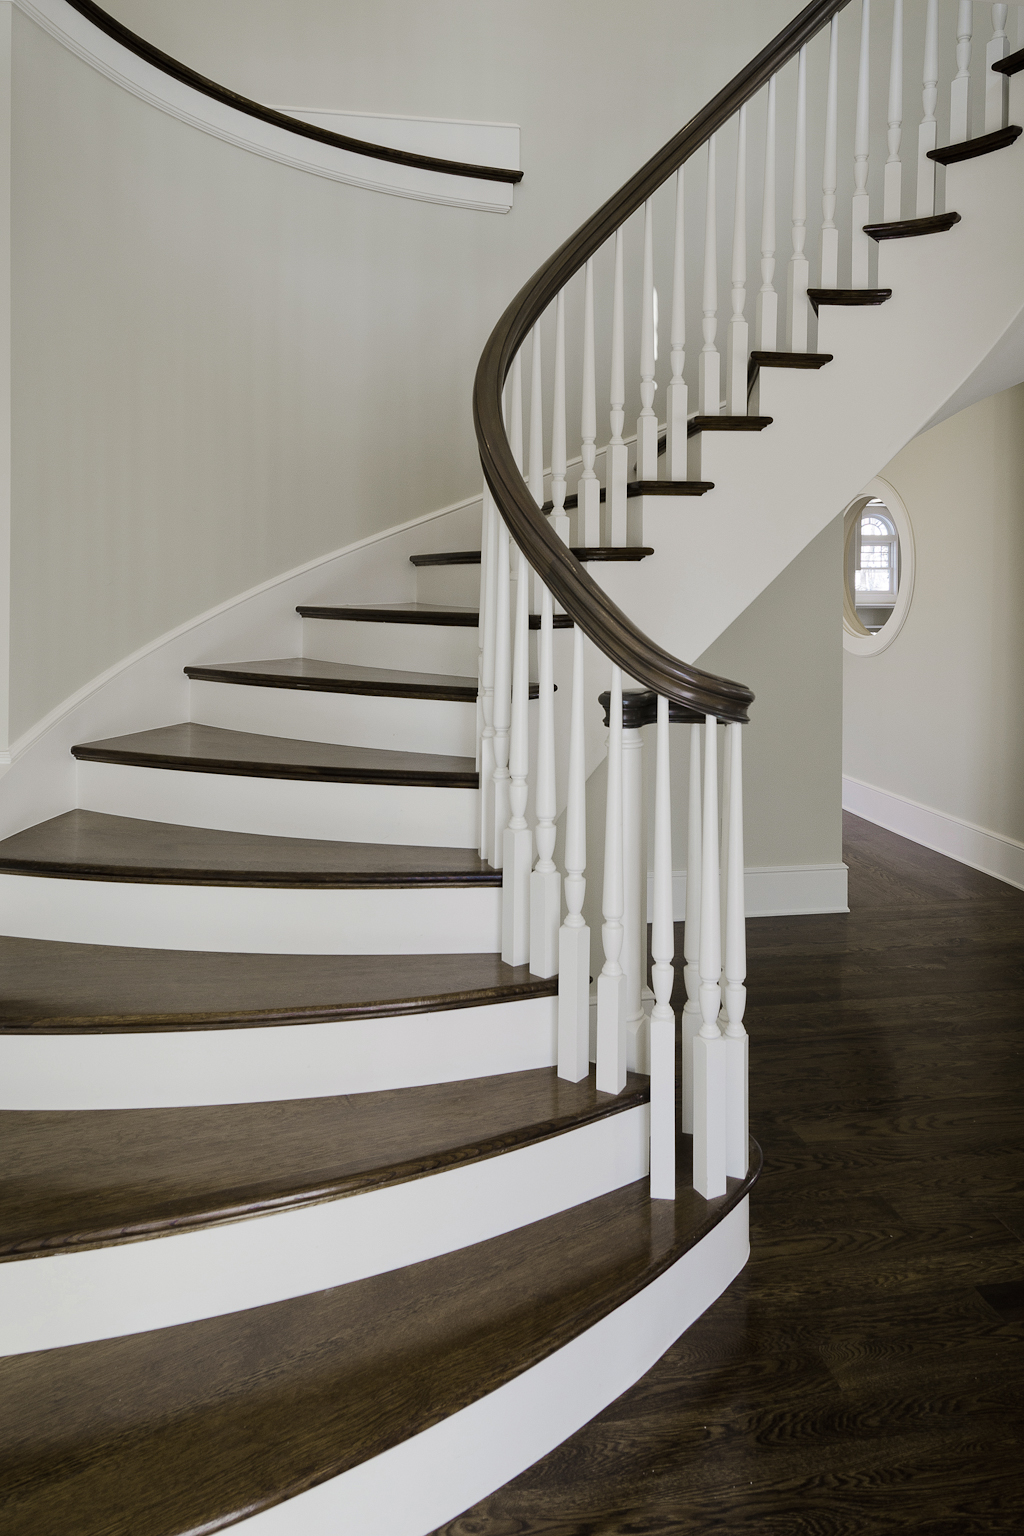 Stairway by Cameo Homes Inc. in Utah